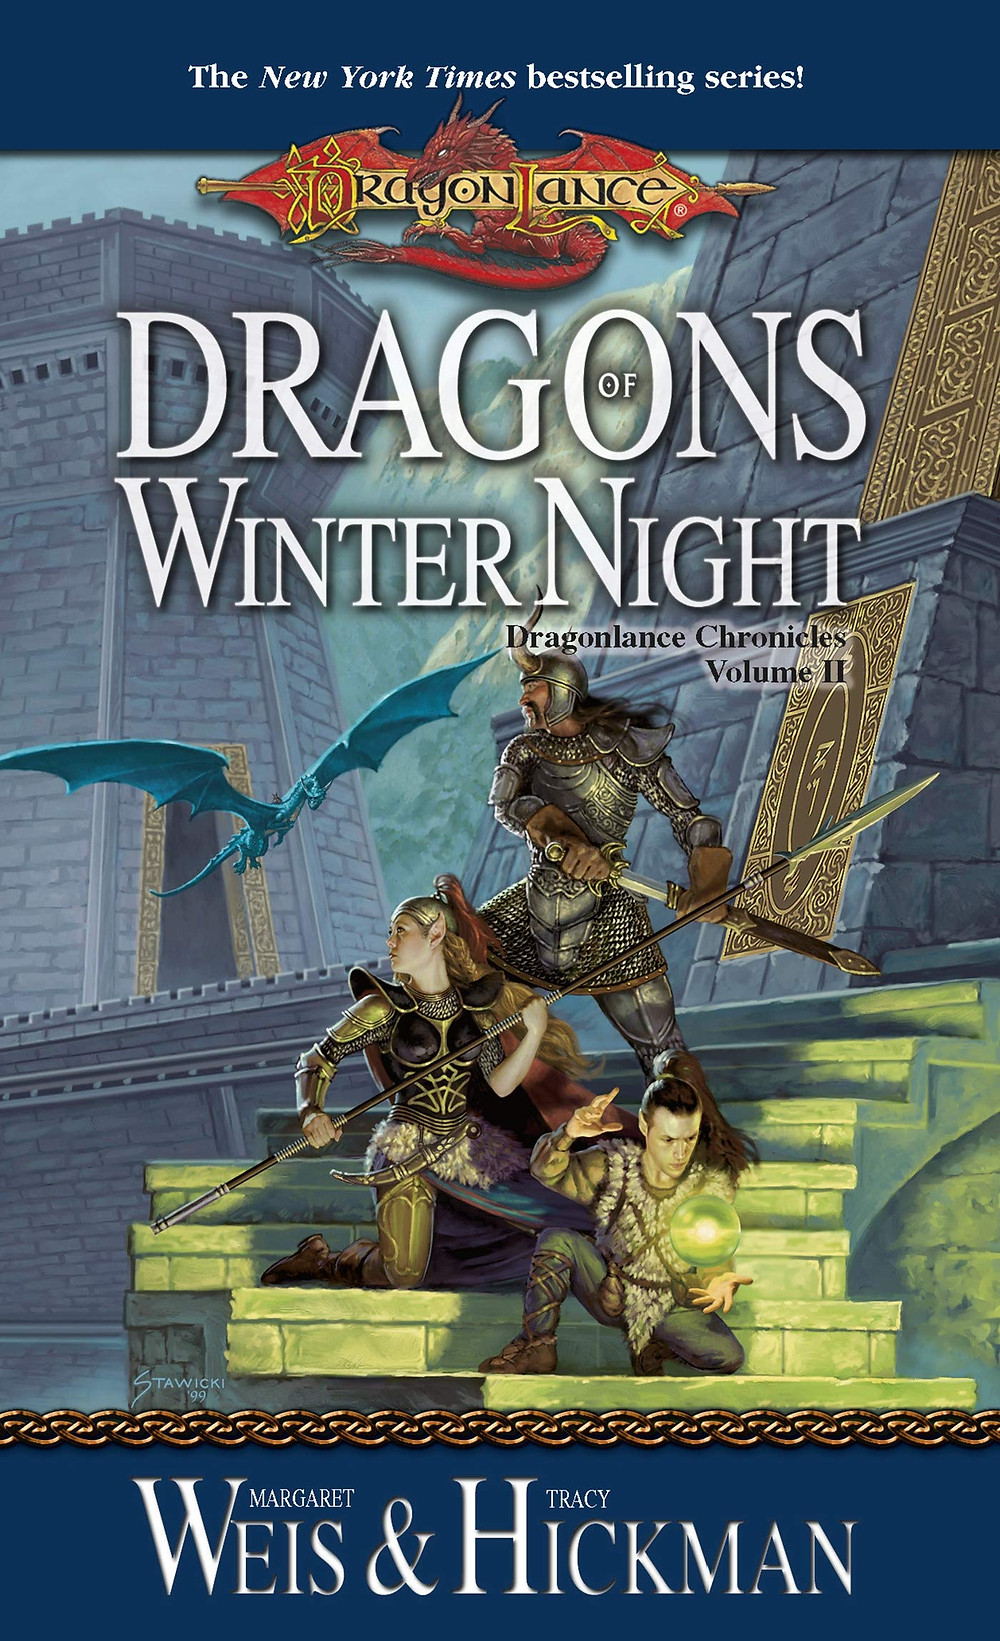 Dragons of Winter Night by Margaret Weis and Tracy Hickman